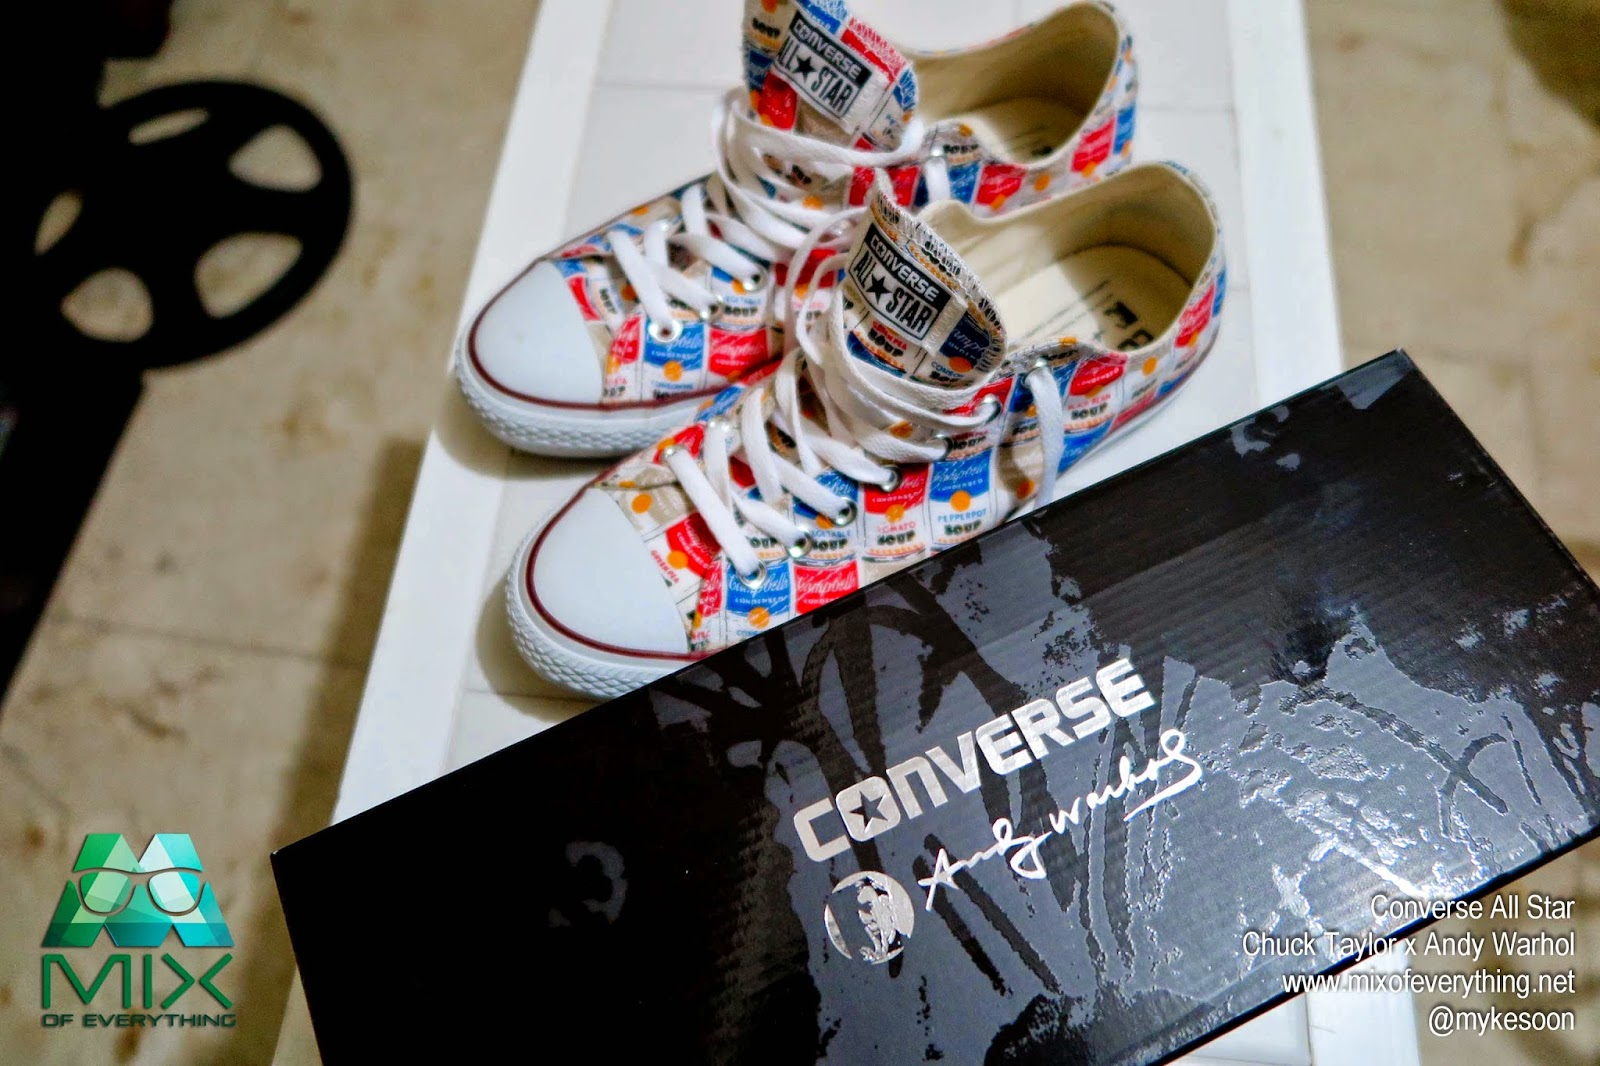 d4042d8963f0 My Converse Chuck Taylor x Andy Warhol - Hello! Welcome to my blog!